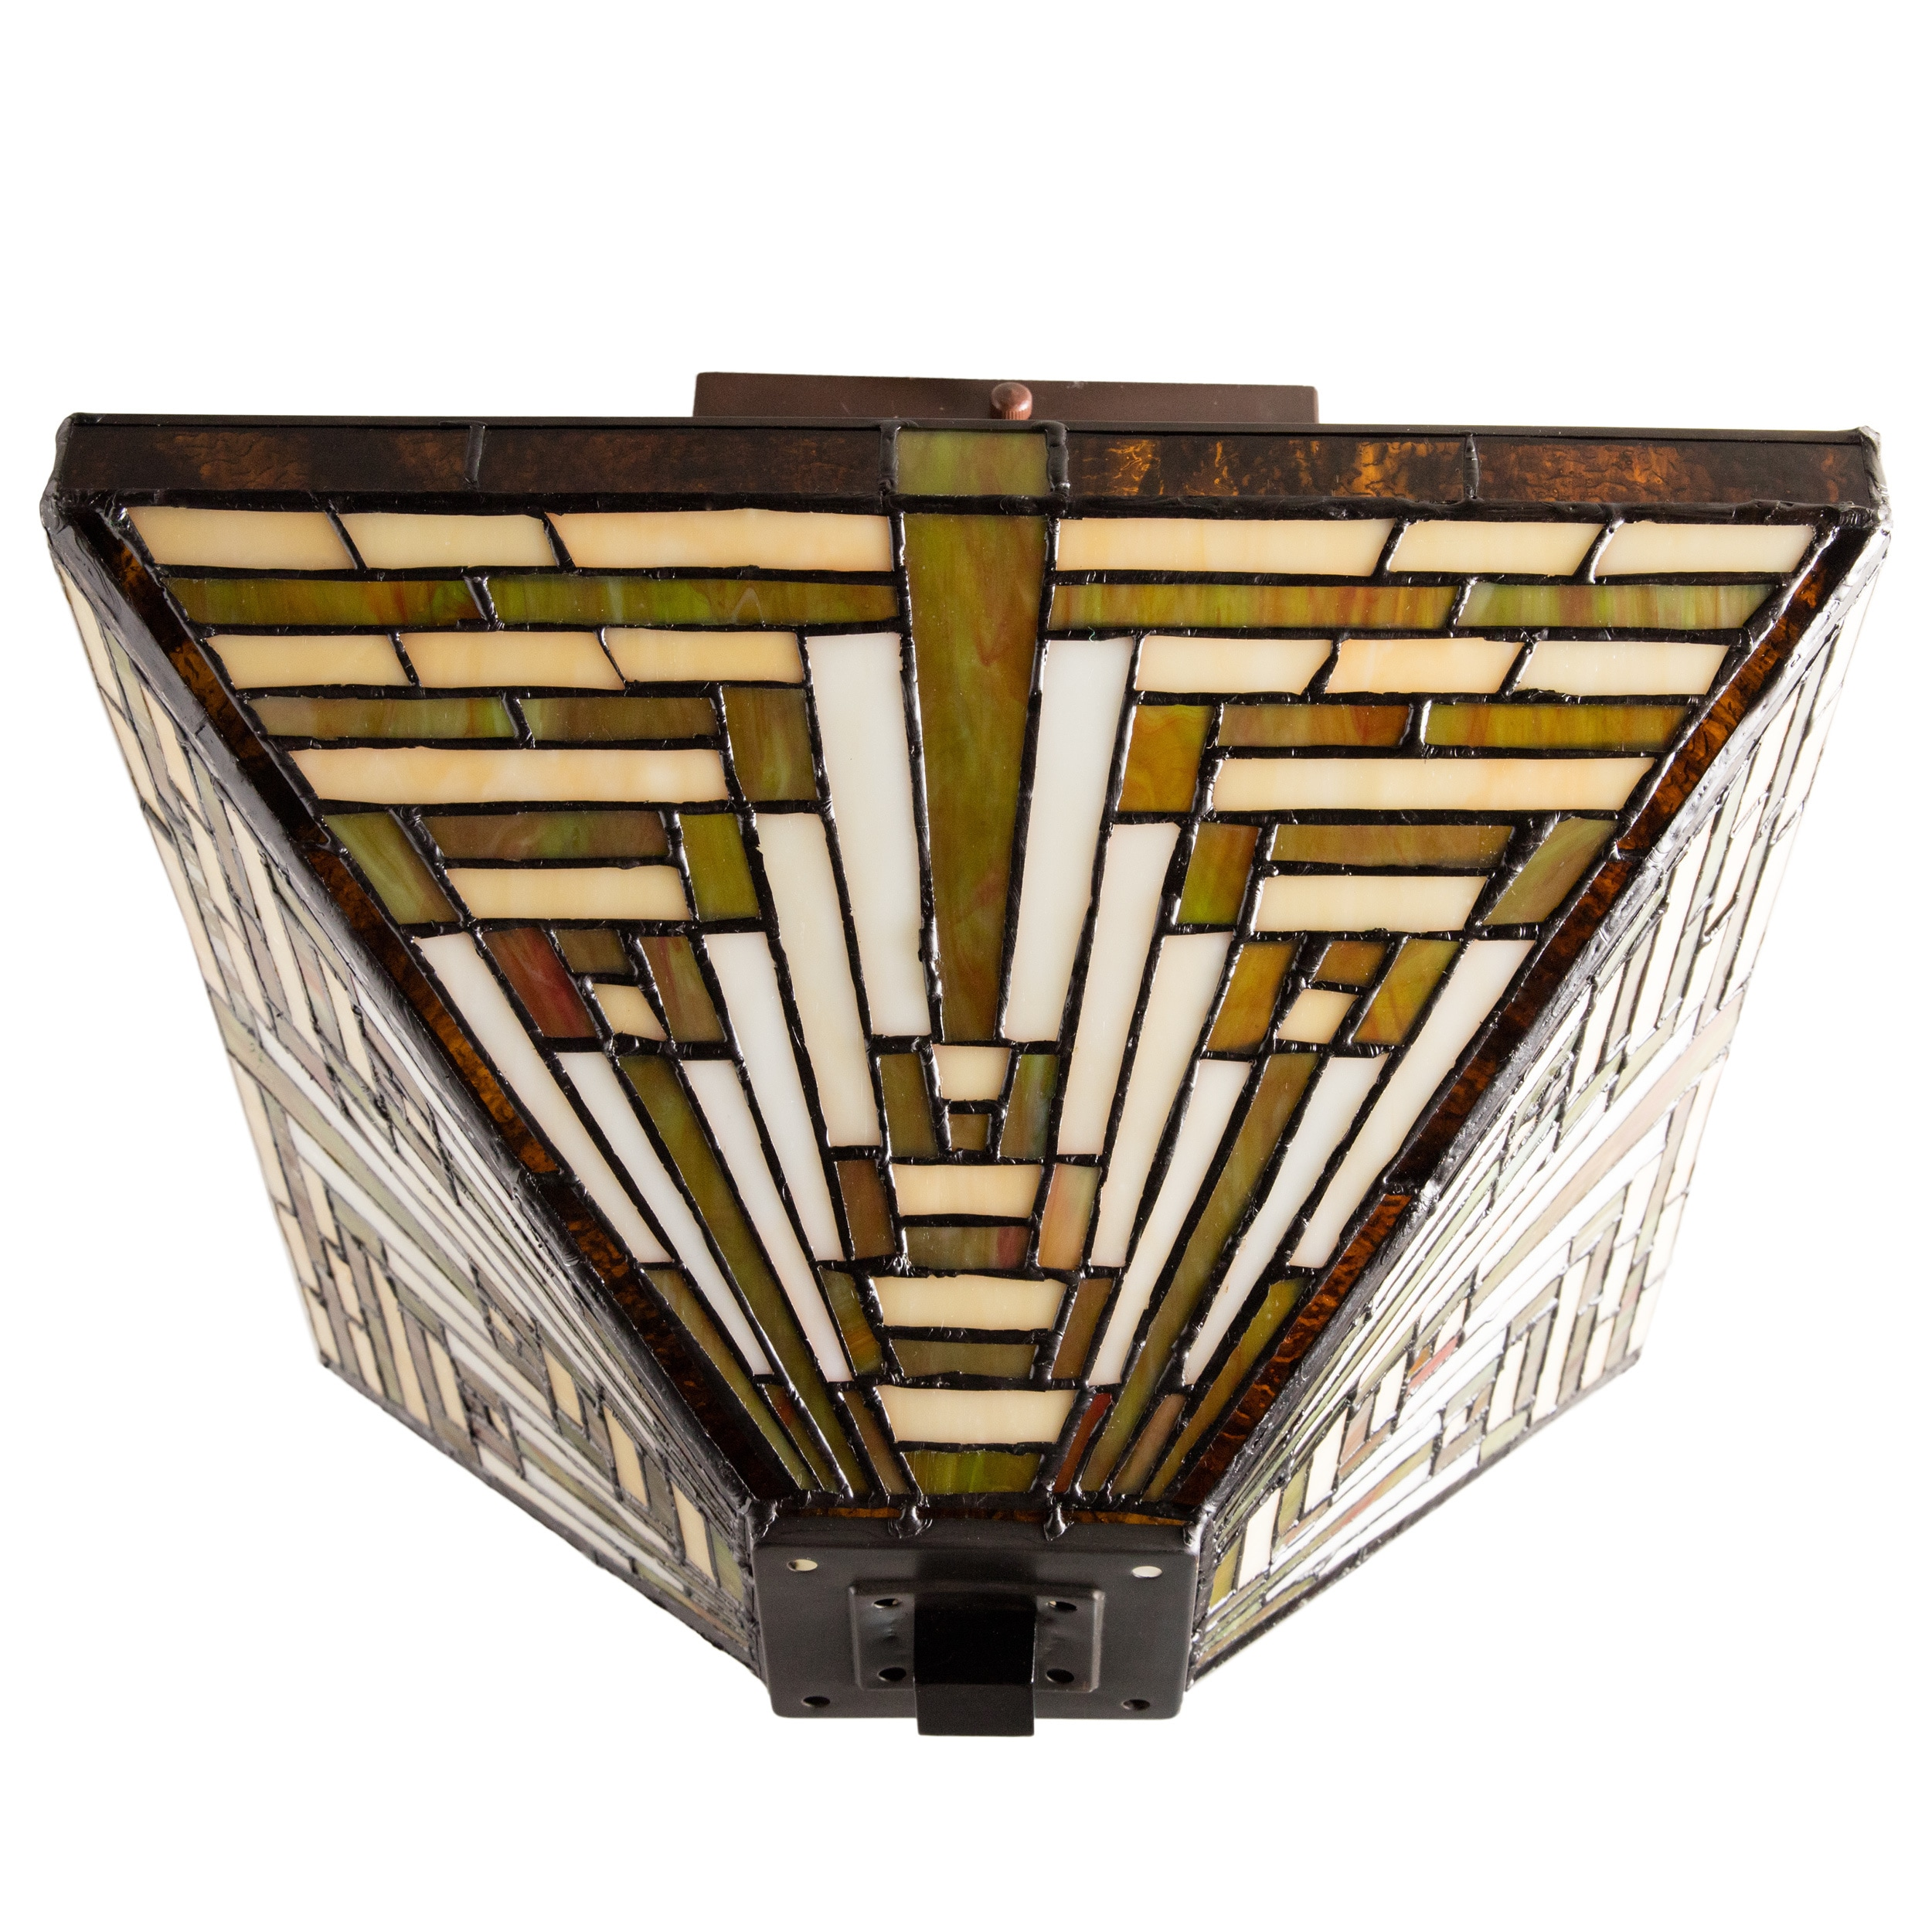 Shop tiffany style frank lloyd wright mission ceiling lamp free shop tiffany style frank lloyd wright mission ceiling lamp free shipping today overstock 3274669 aloadofball Choice Image